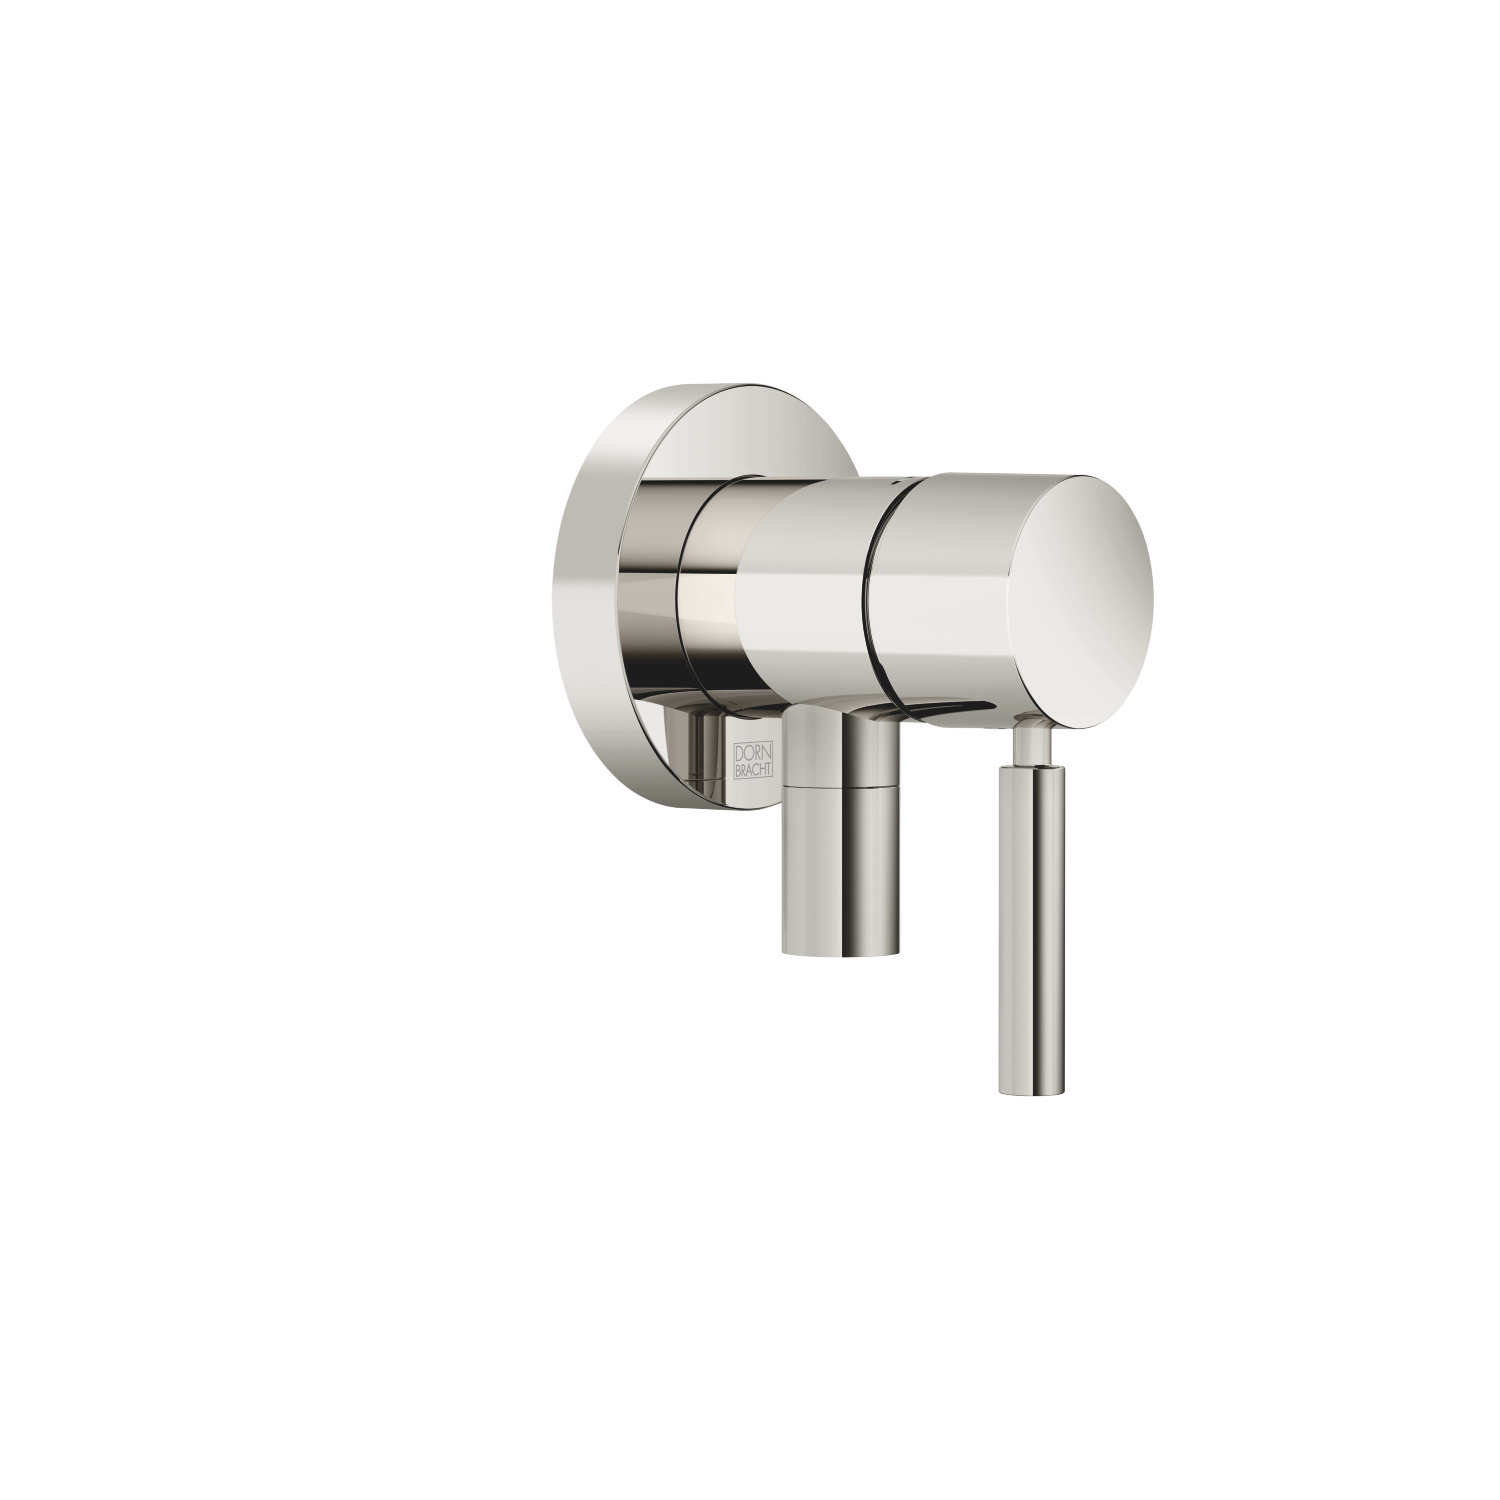 Concealed single-lever mixer with cover plate with integrated shower connection - platinum